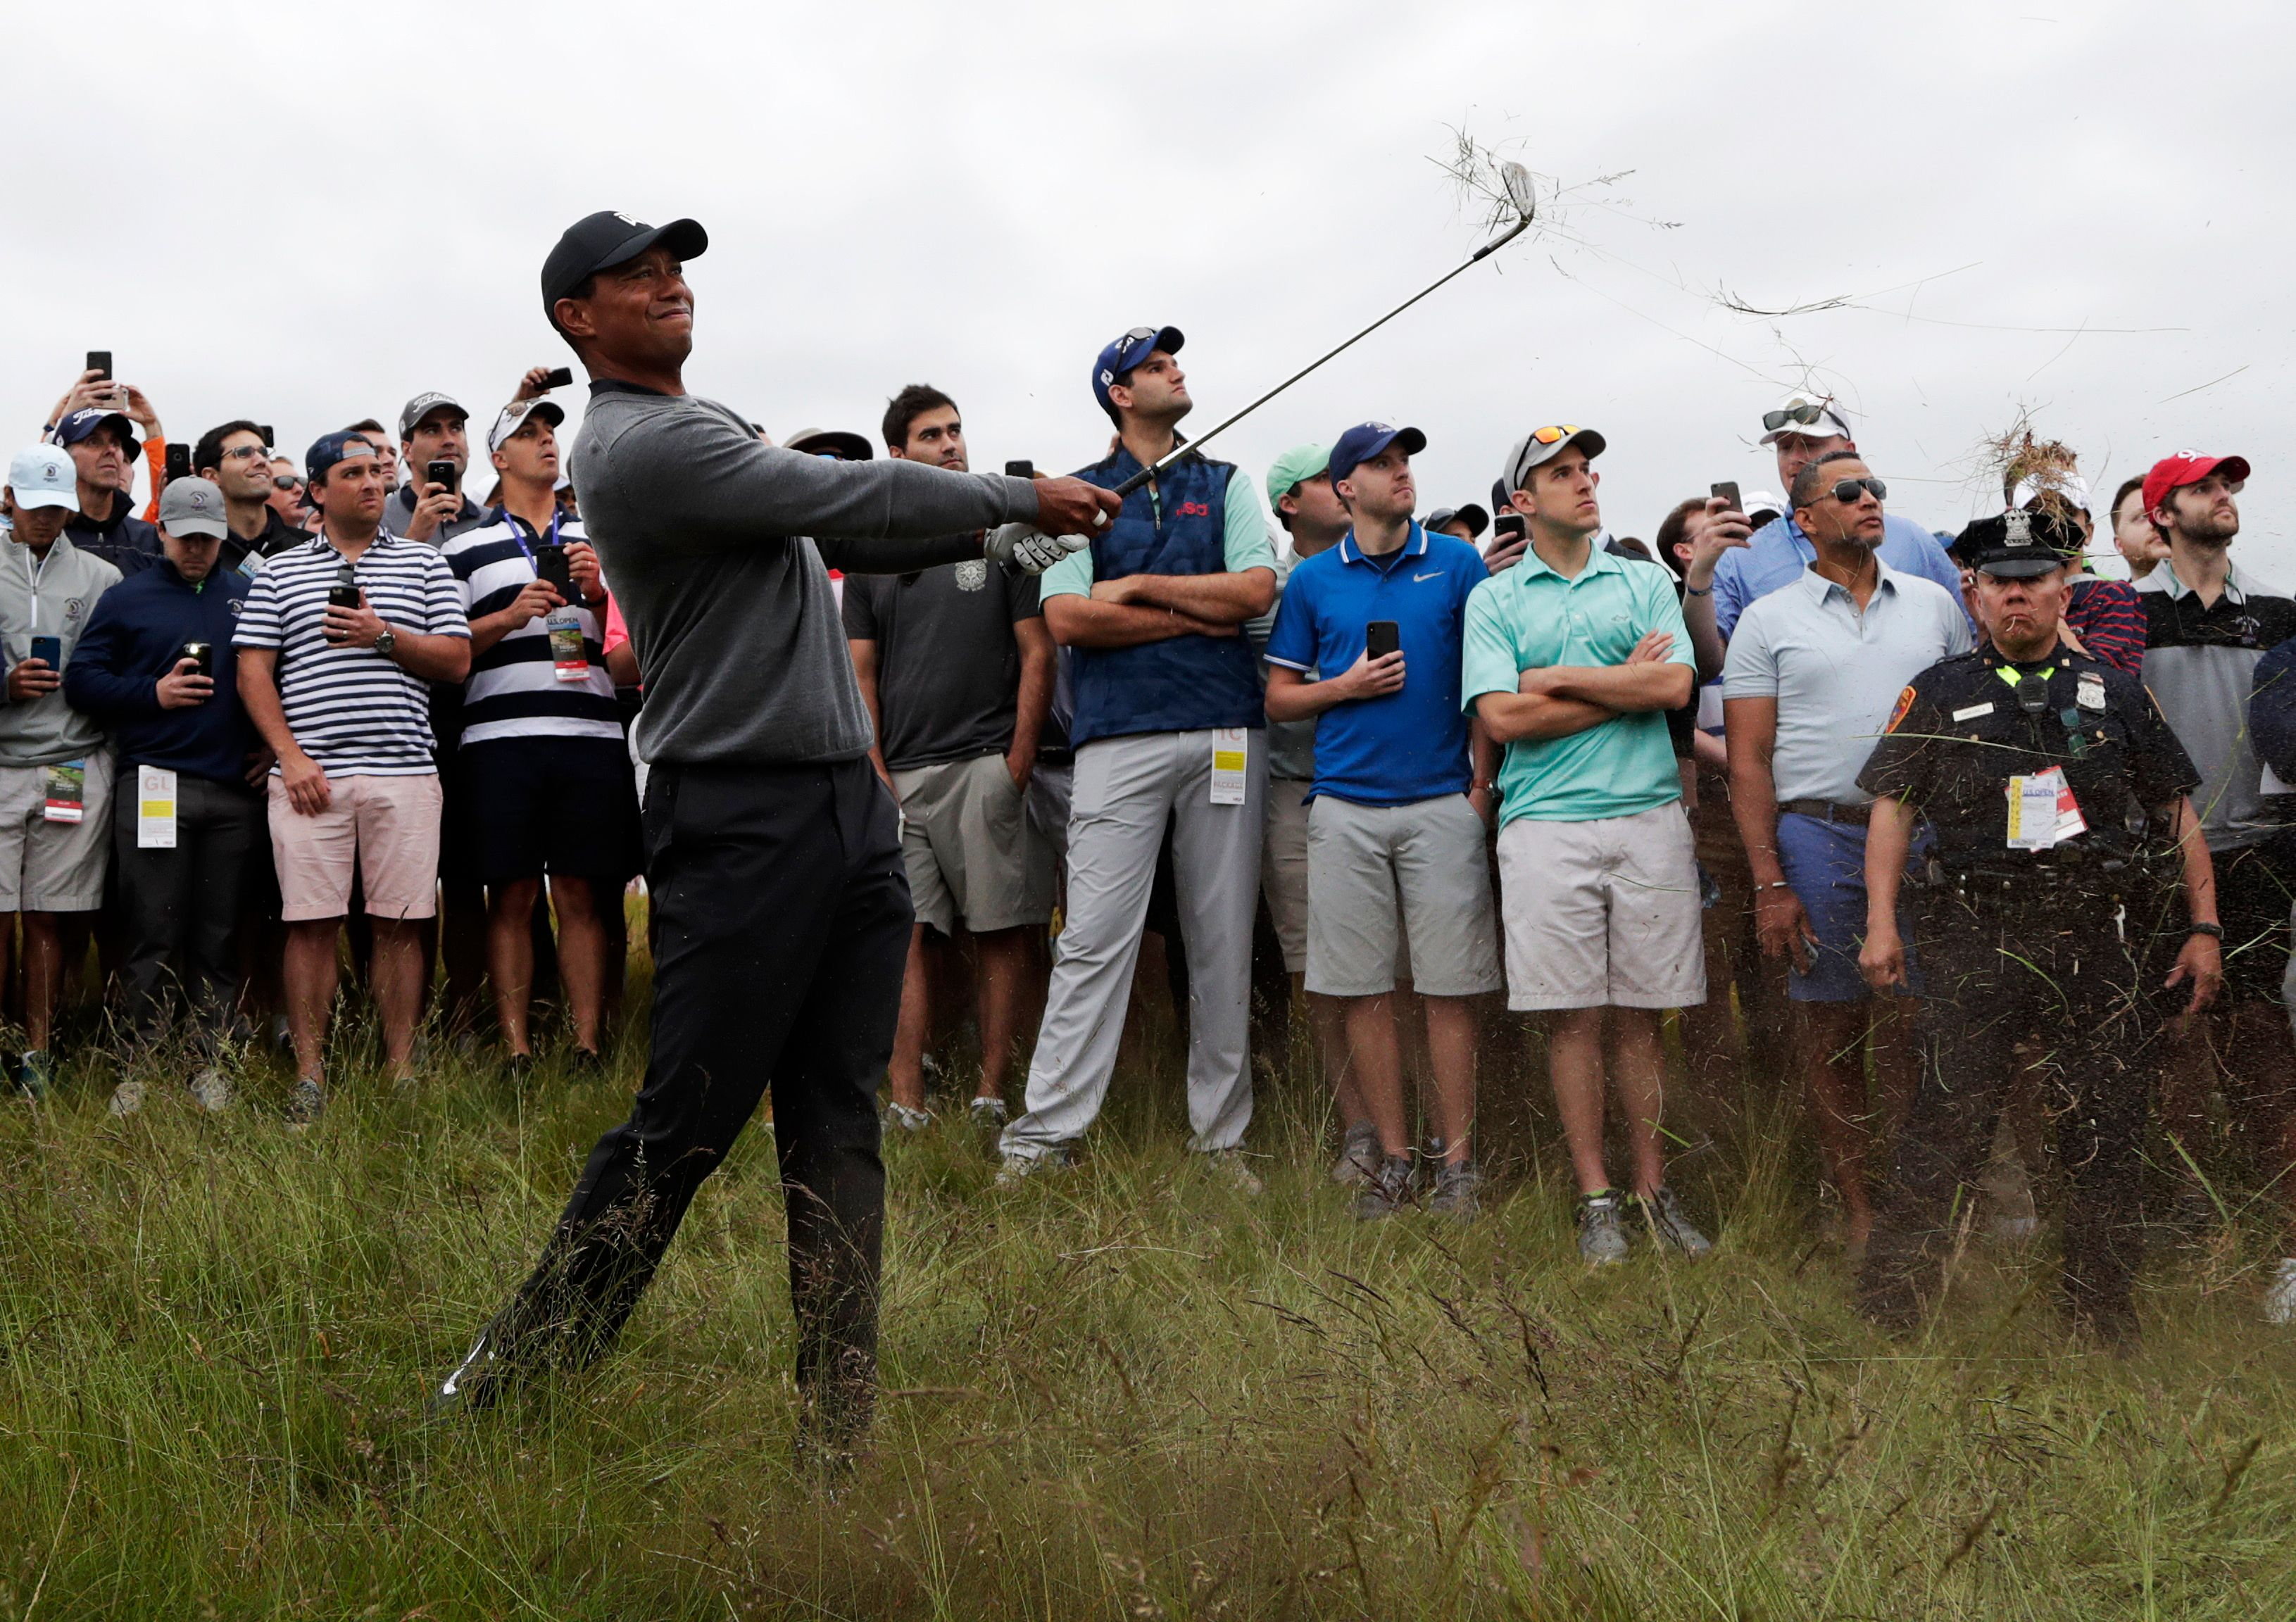 The Latest: Scoring improves in wet conditions at US Open